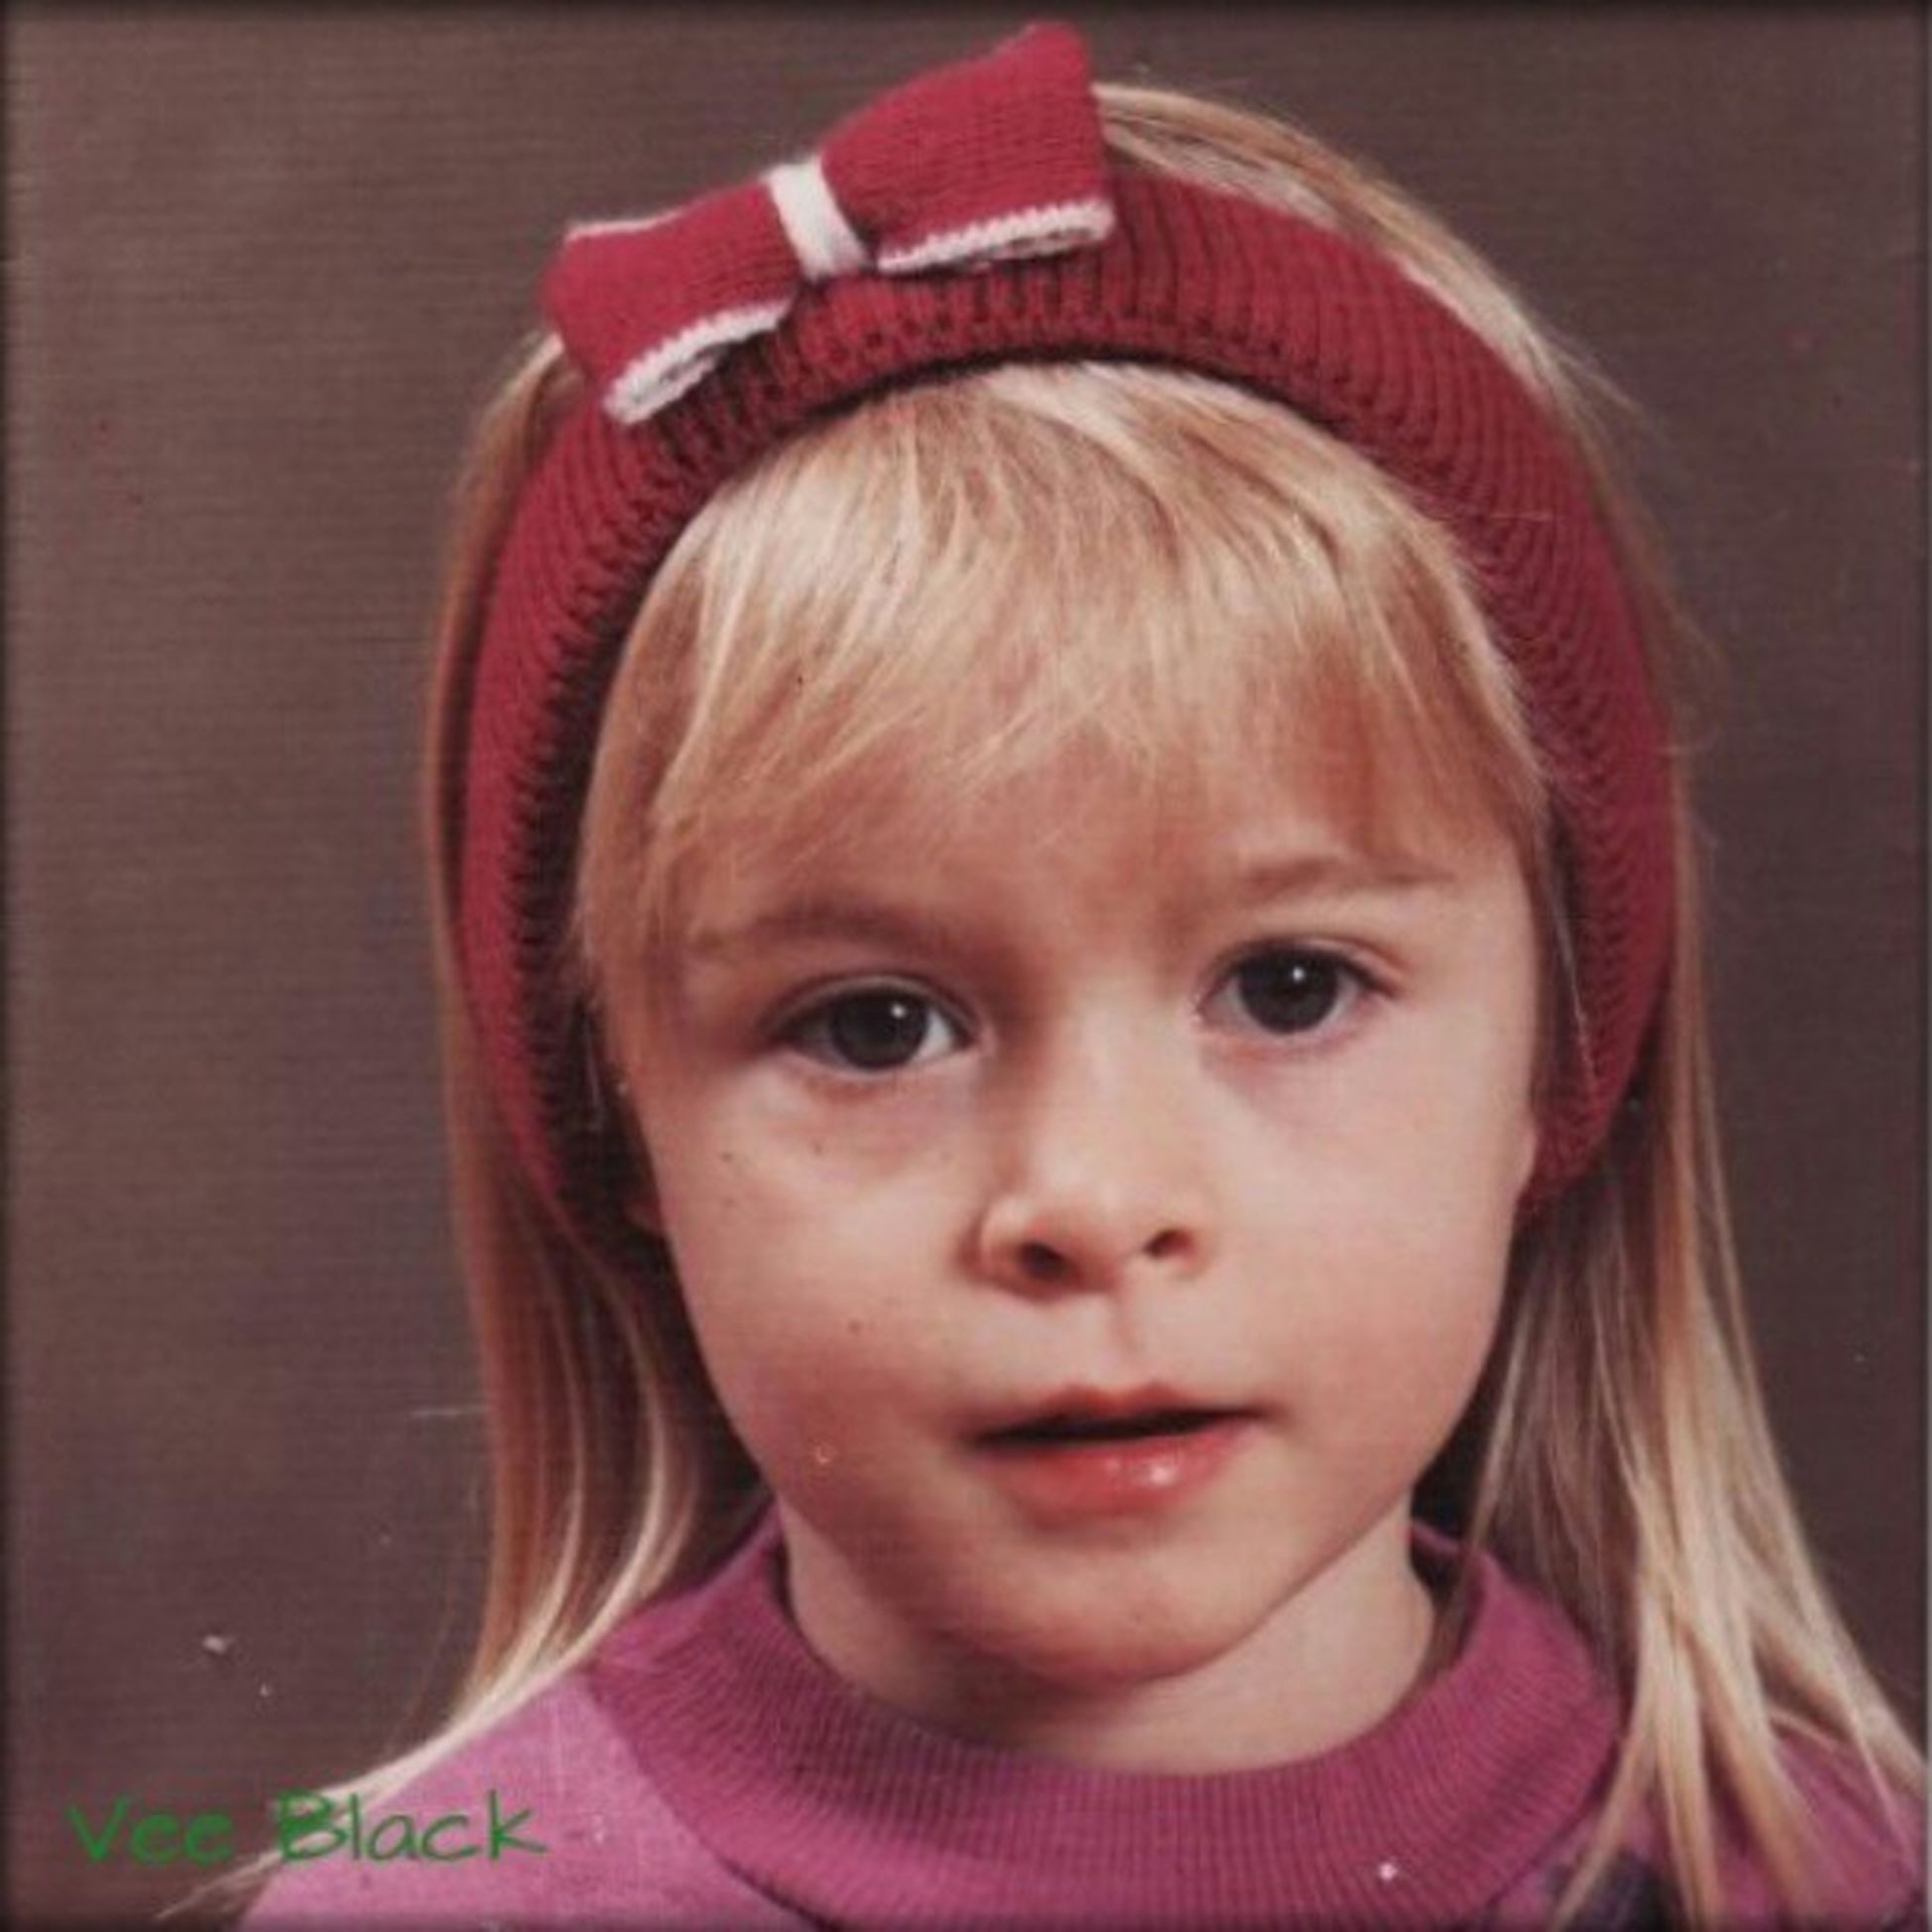 And this is cute little Vee at (I think it was) age 4 (or almost 5...) LittleVee